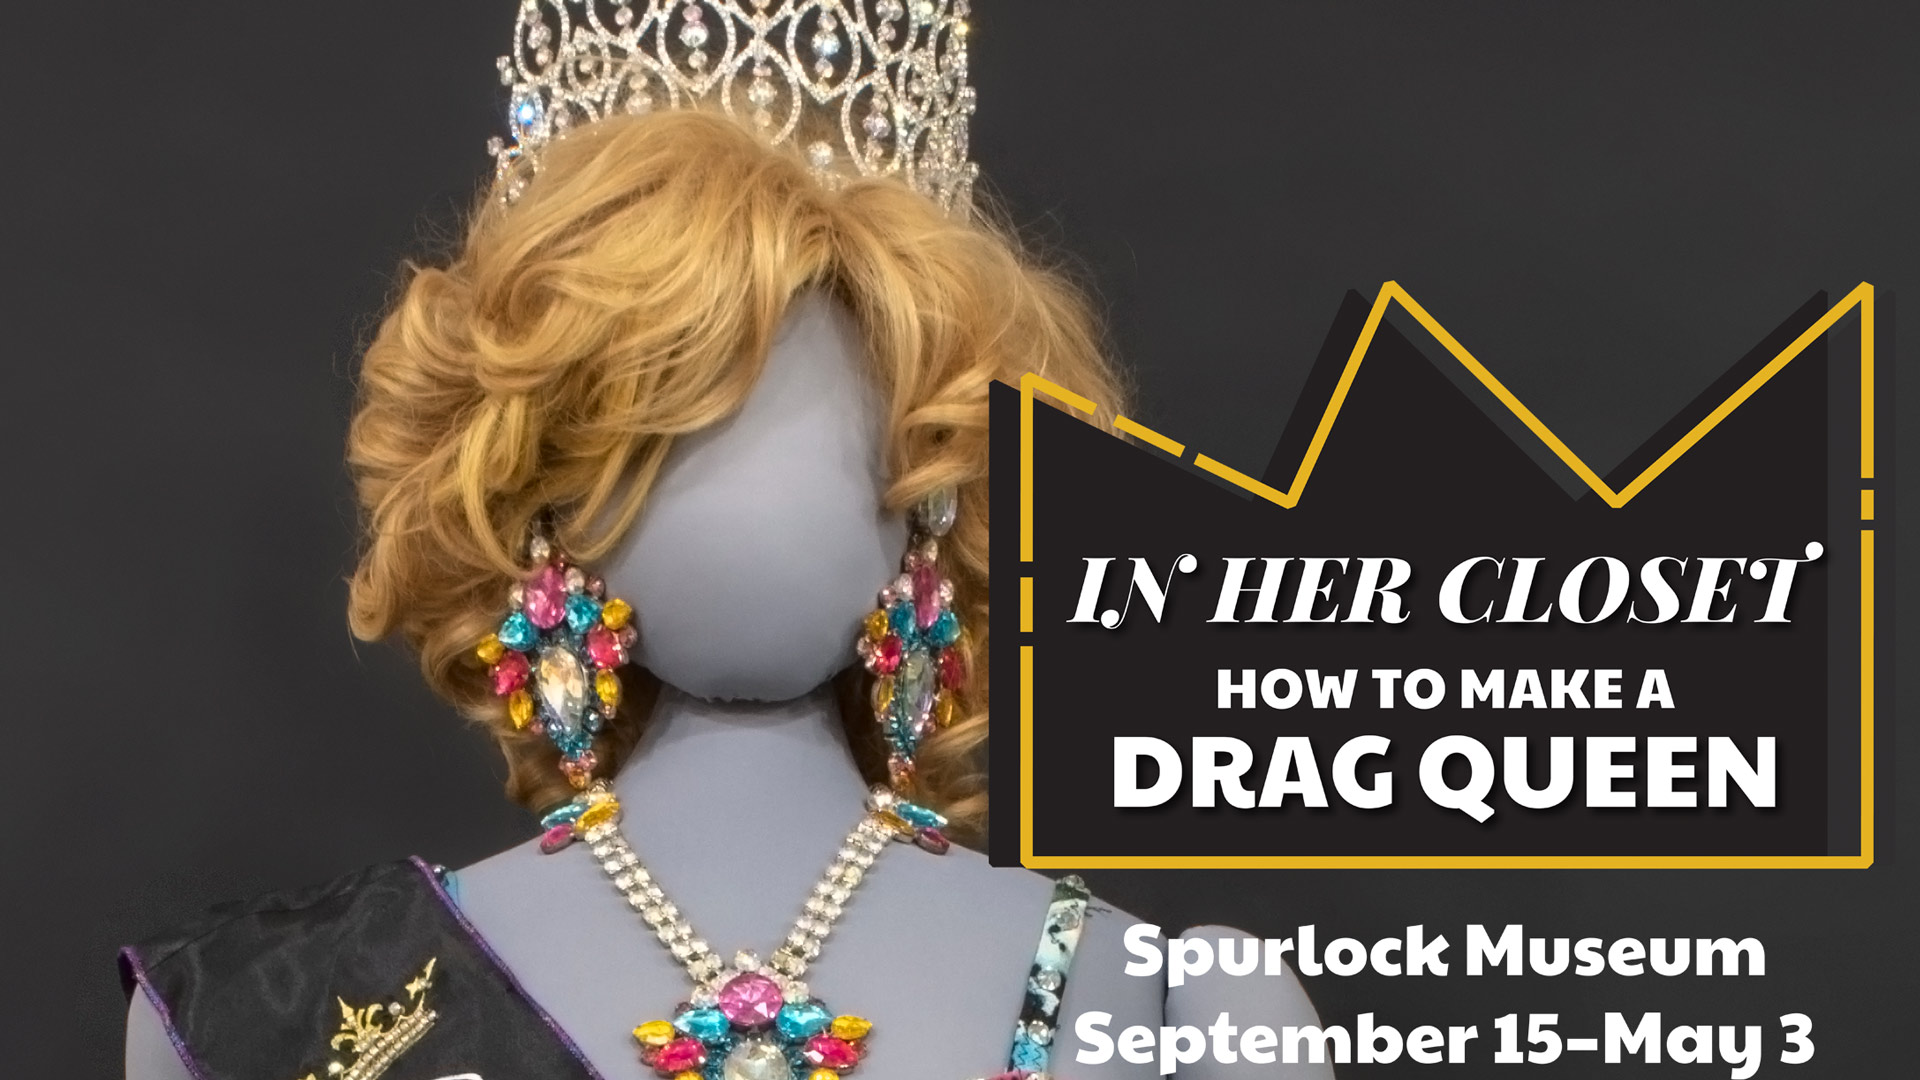 Mannequin from In Her Closet How to make a Drag Queen exhibit adorned with jewlery superimposed with exhibit logo, location, and dates